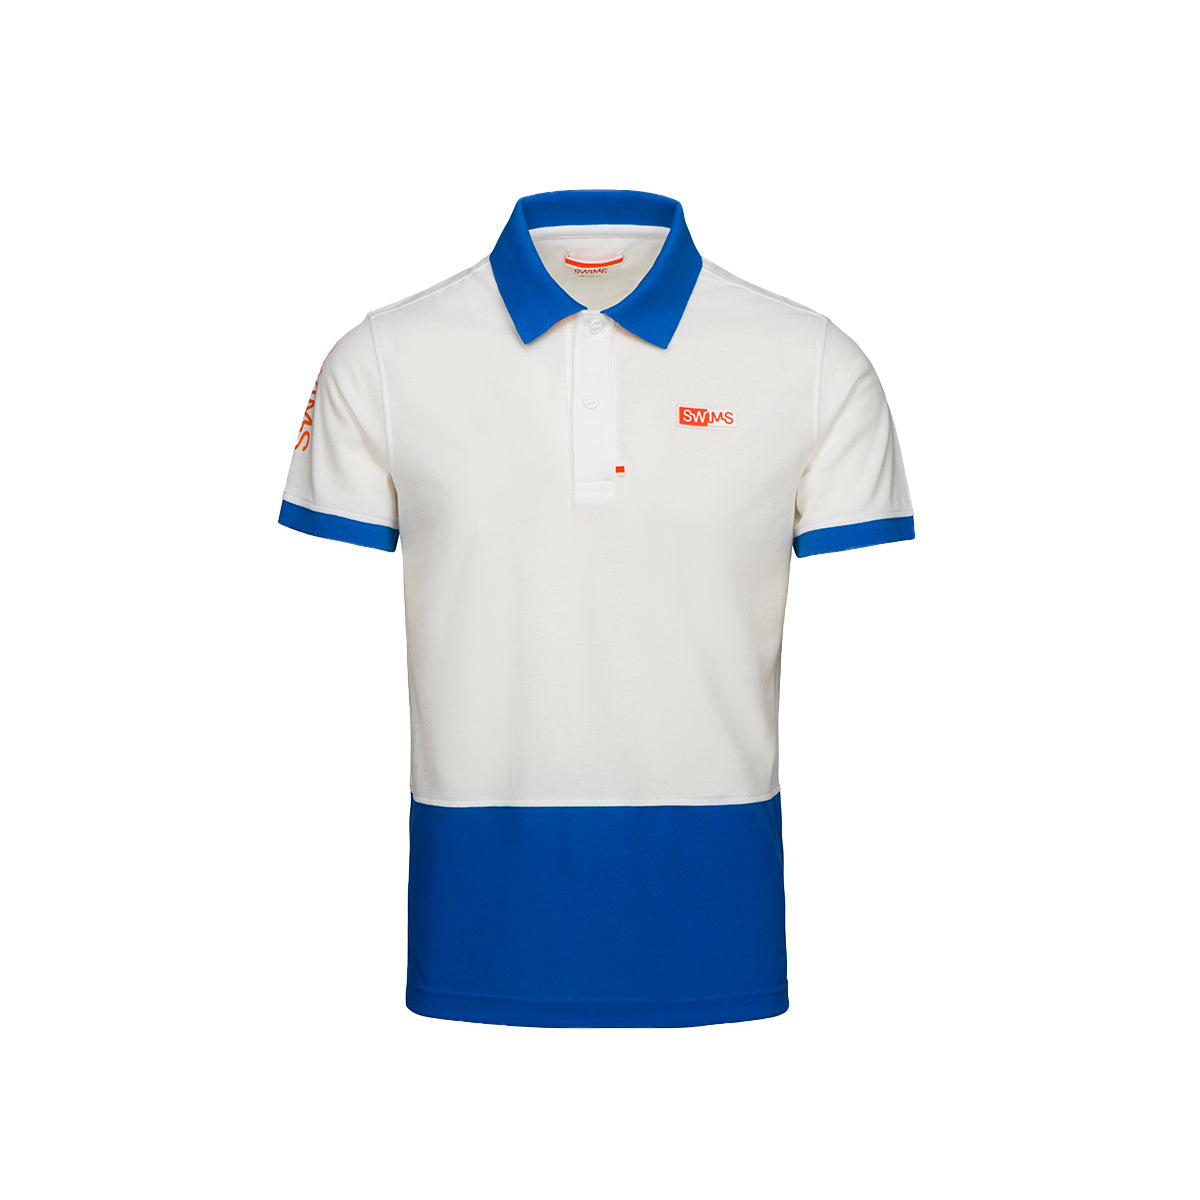 Forno Logo Hybrid Hydrophobic Pique Polo - background::white,variant::blue